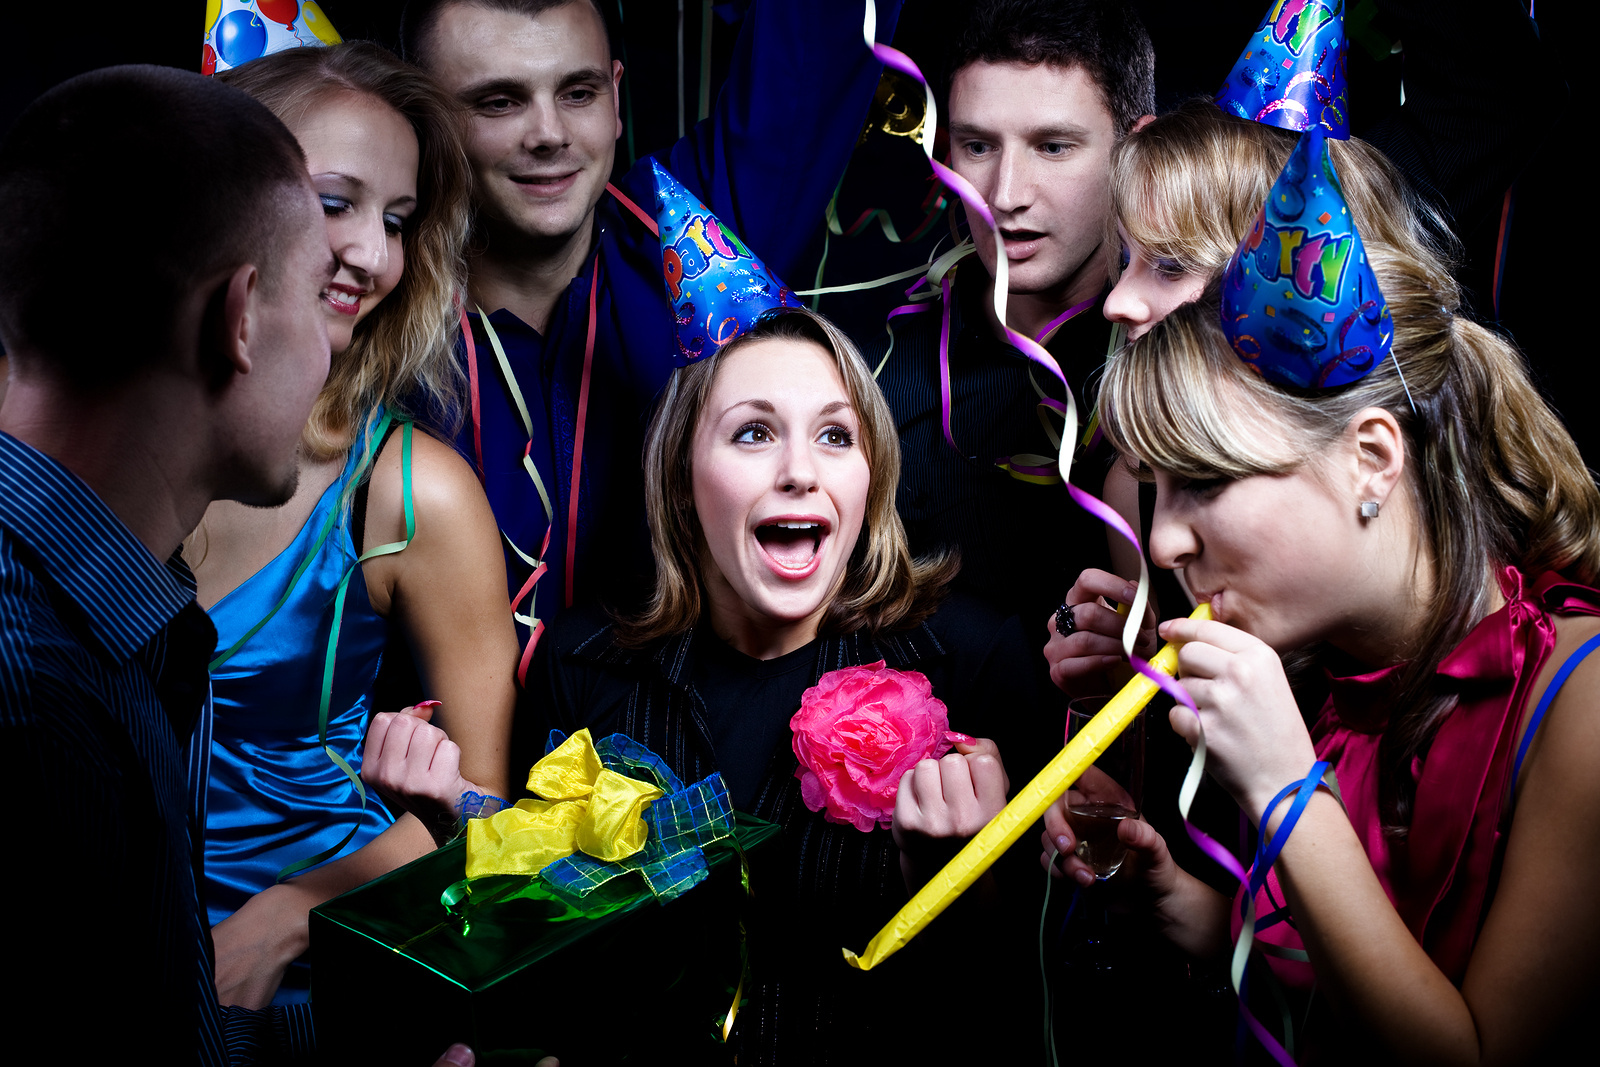 Adult Birthday Party – Have Fun With Adult Parties